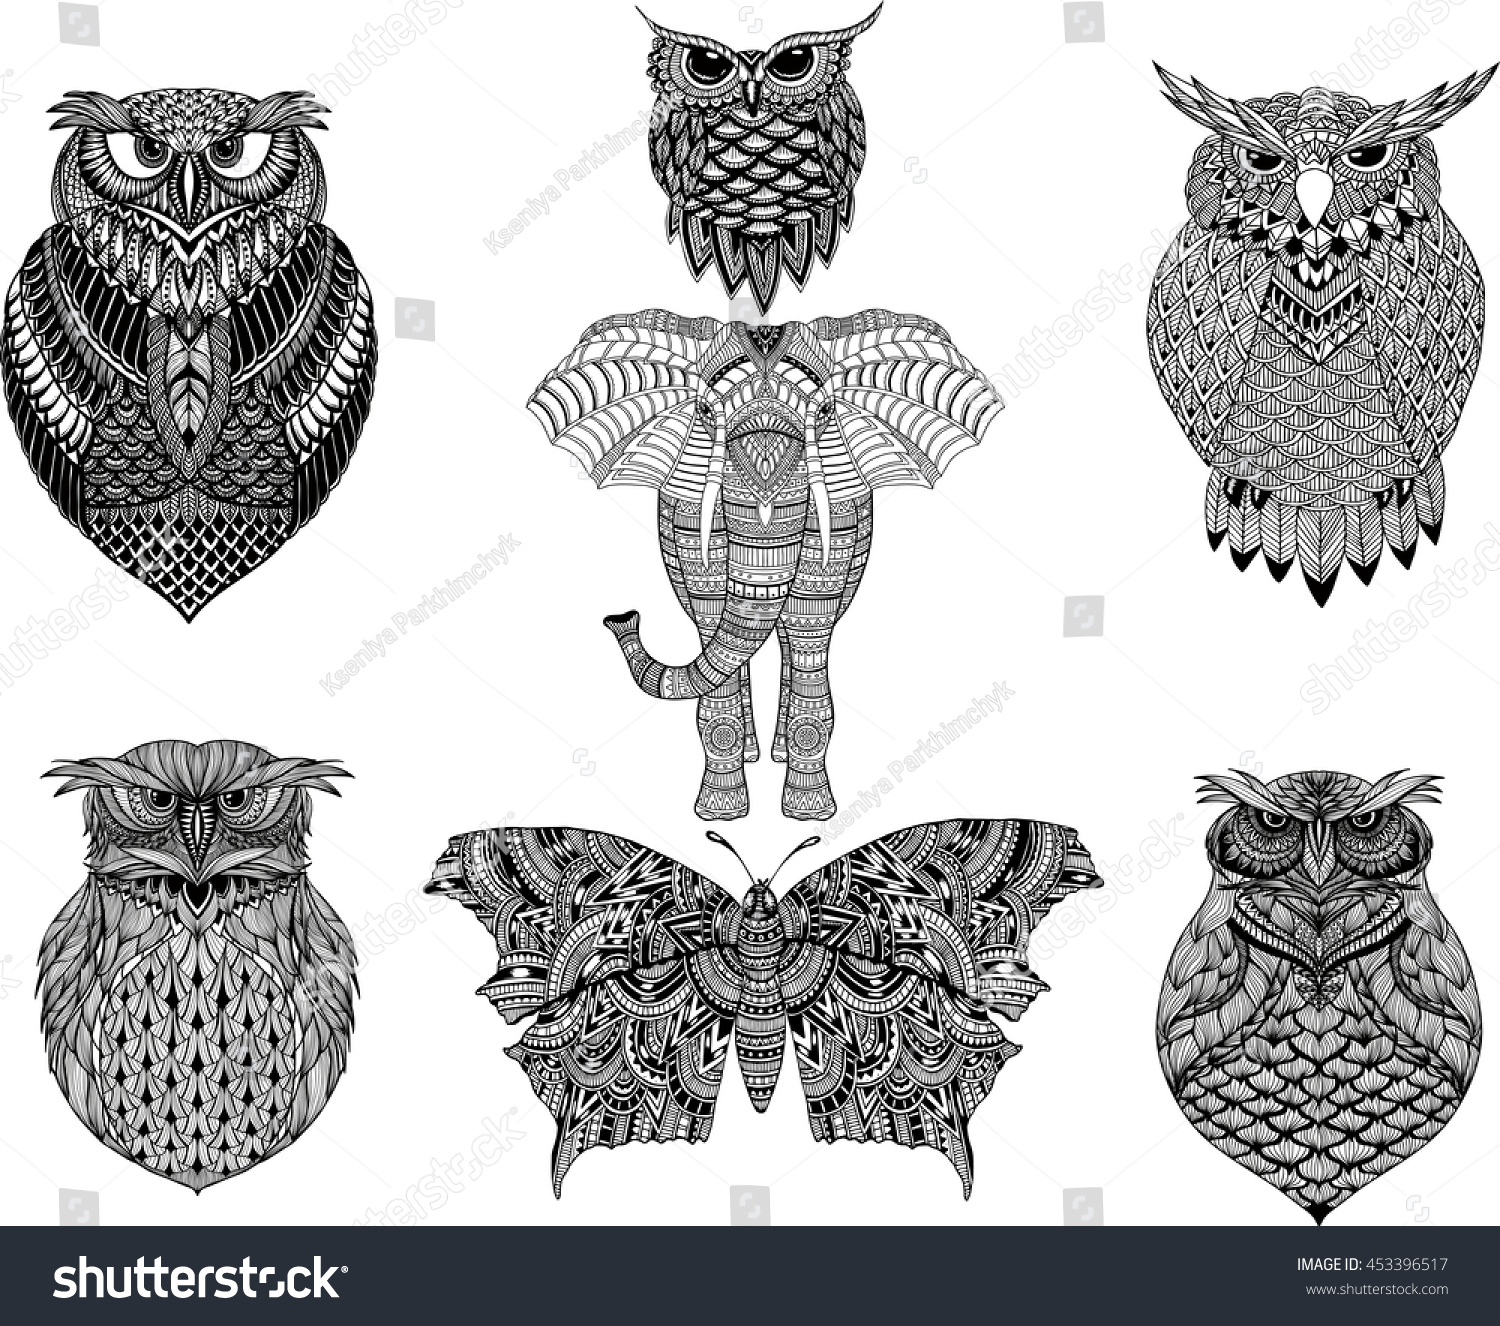 Hand Drawn Zentangle Owl Butterfly Elephant For Adult Coloring Page In Style